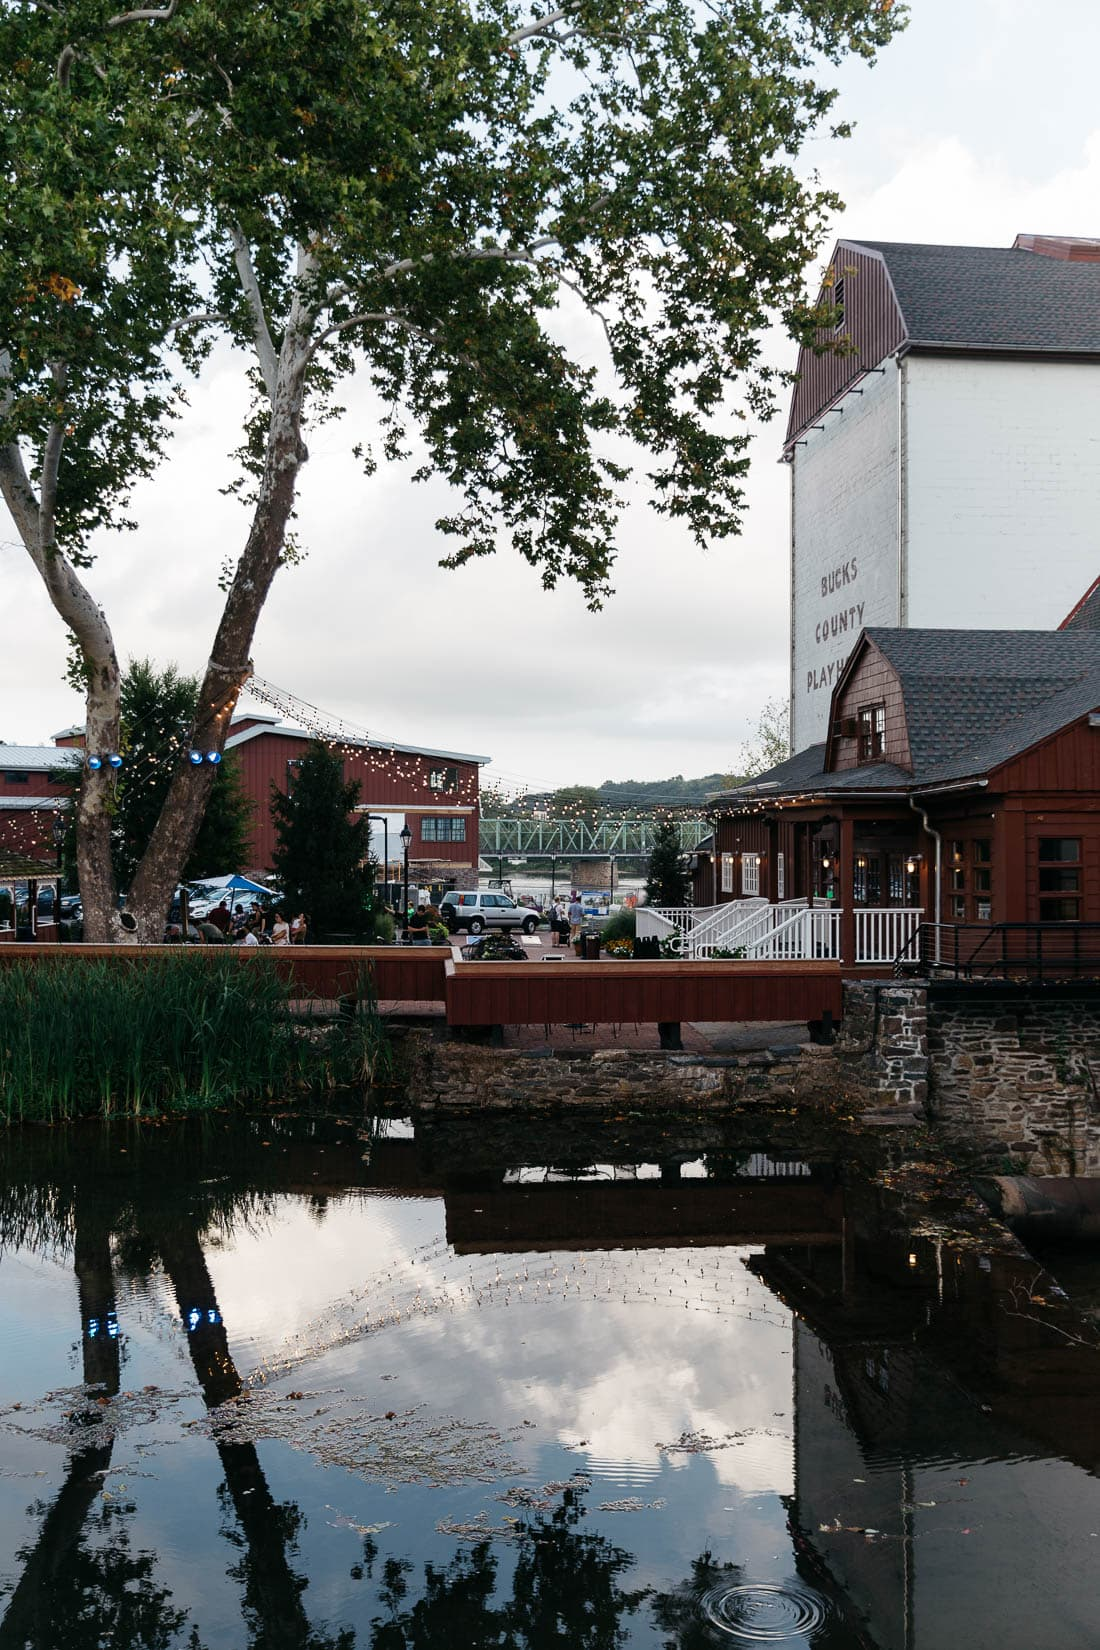 What to do in New Hope PA